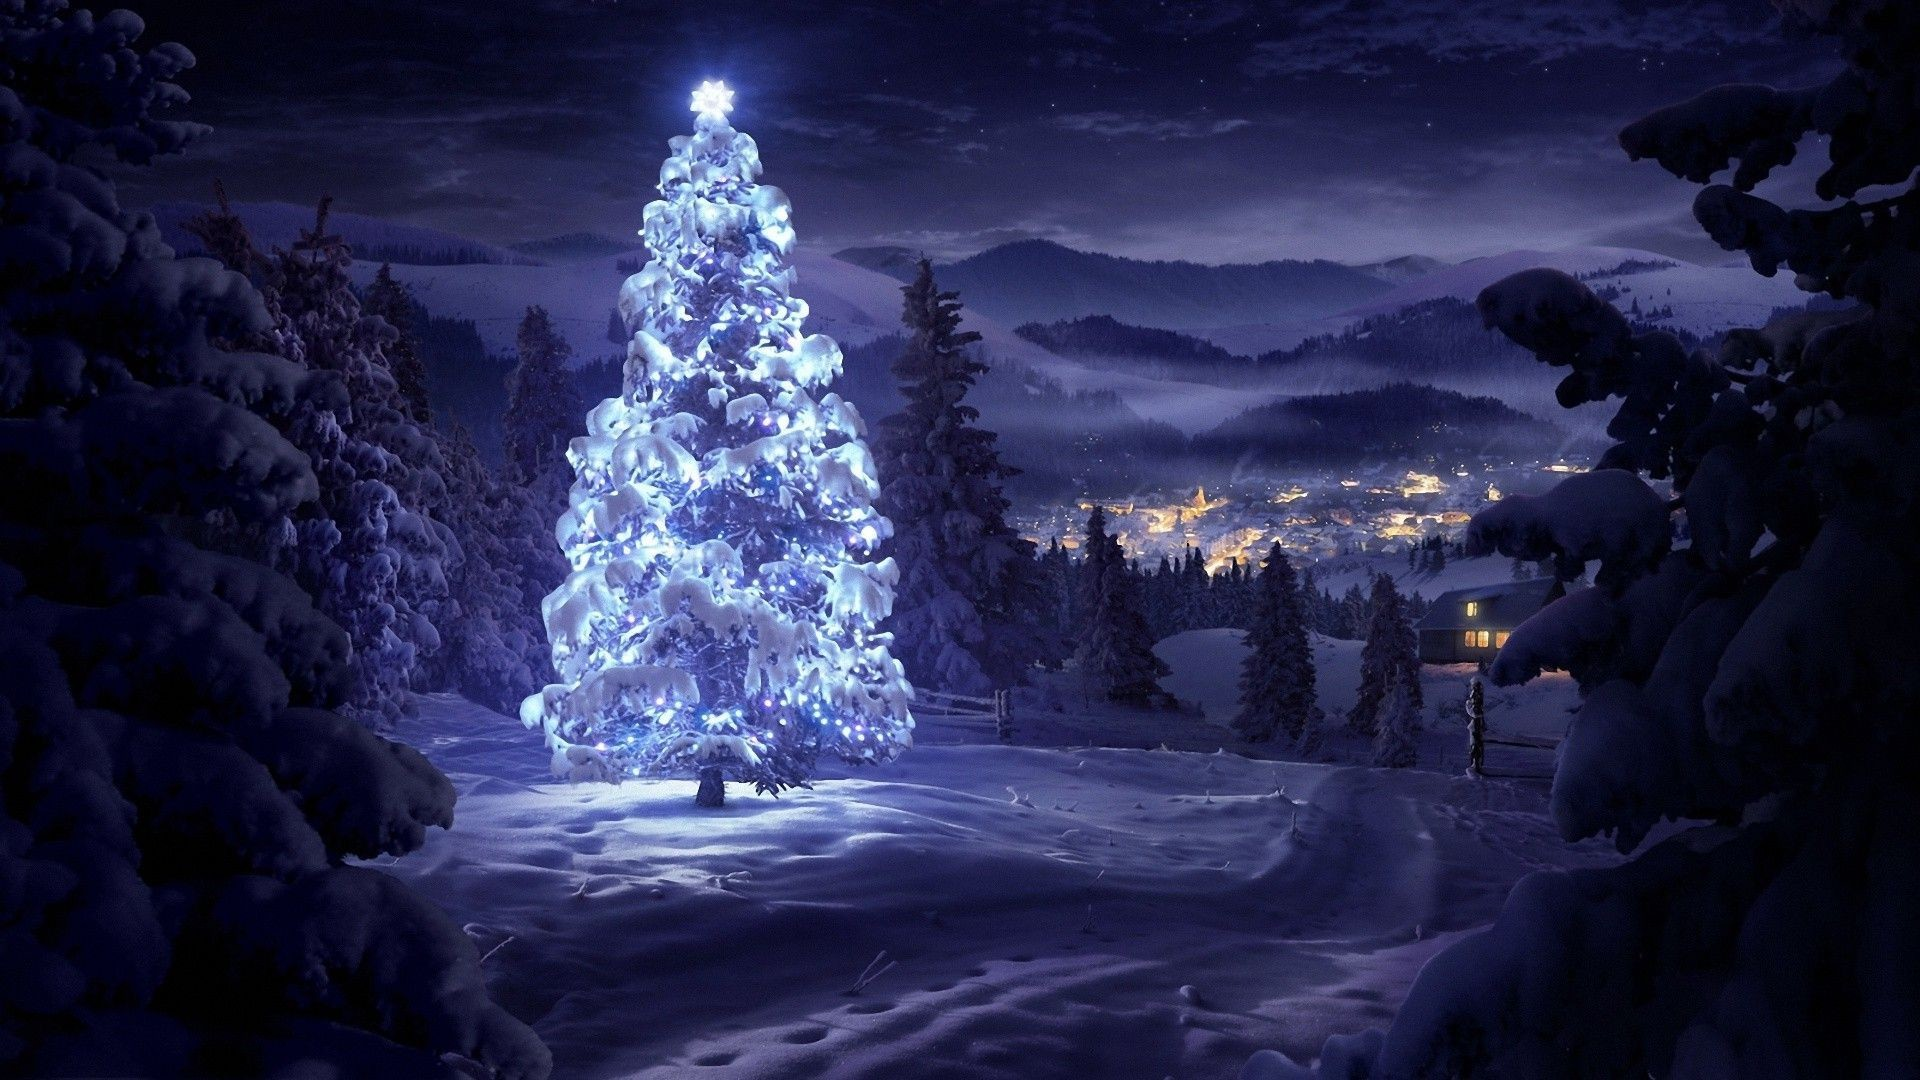 Iphone 5 Falling Snow Wallpaper Christmas Tree Wallpaper 79 Images